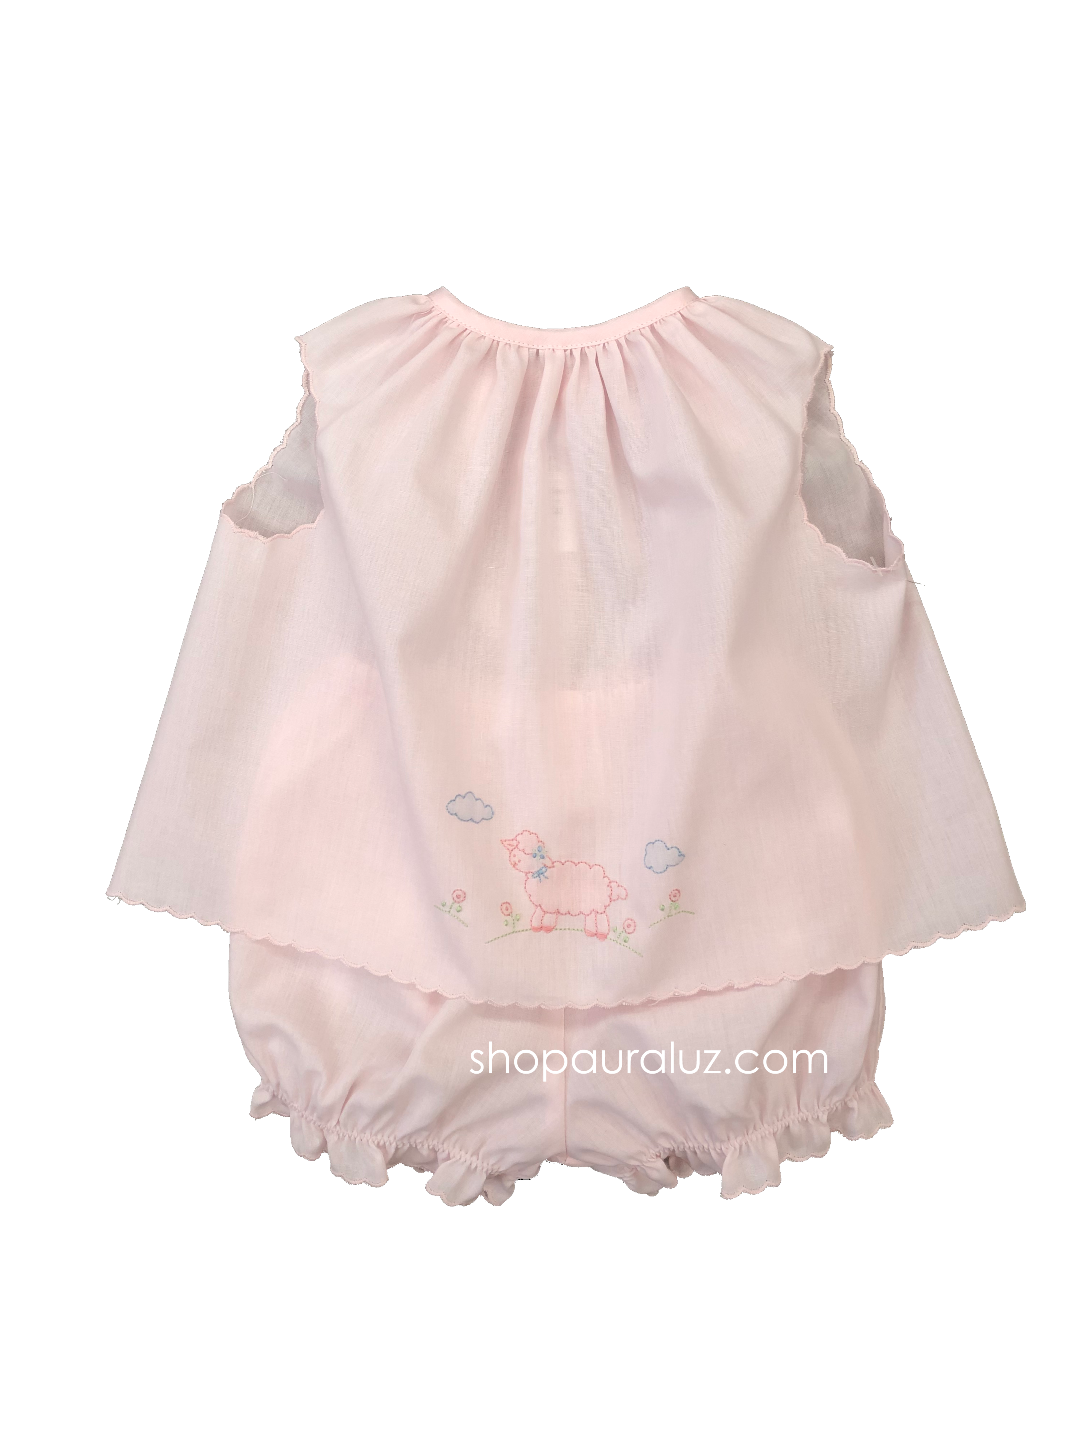 Auraluz Girl Sleeveless 2pc Set...Pink with pink scallop trim and embroidered lamb